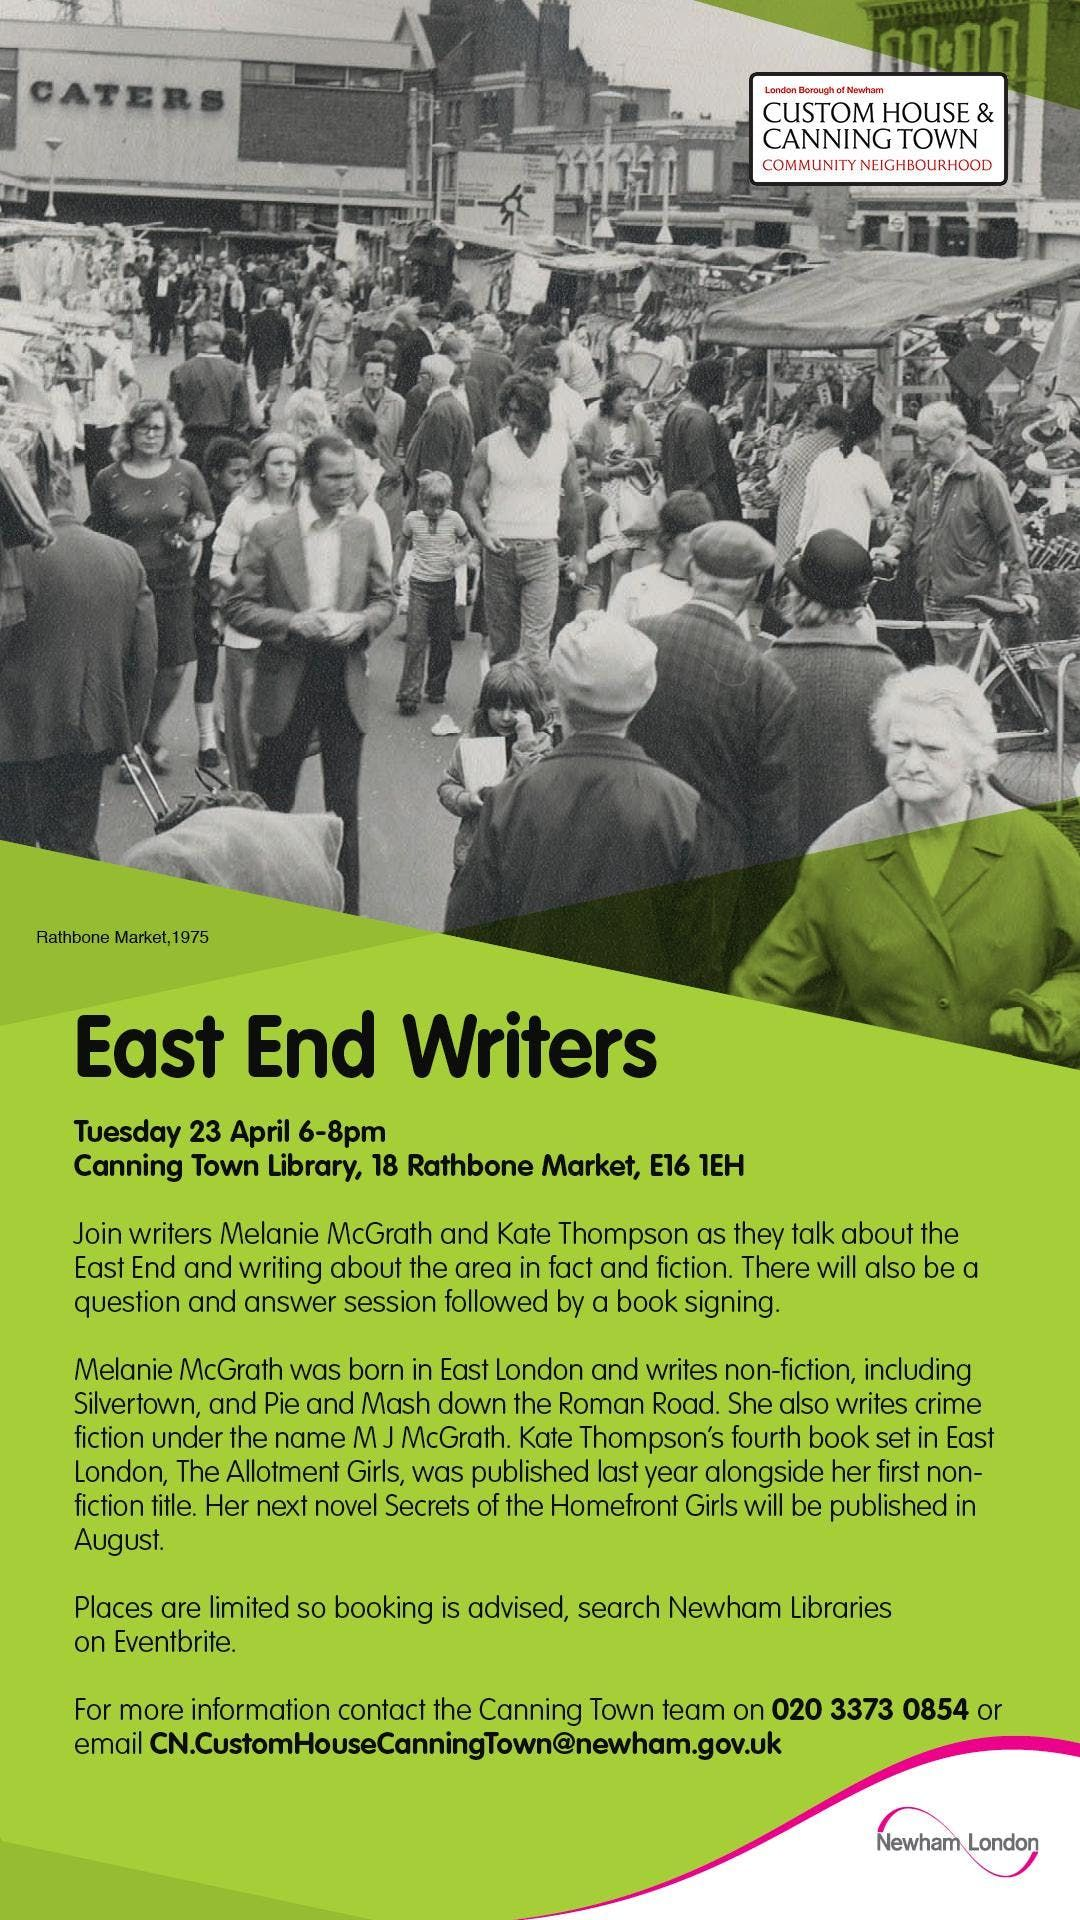 East End Writers